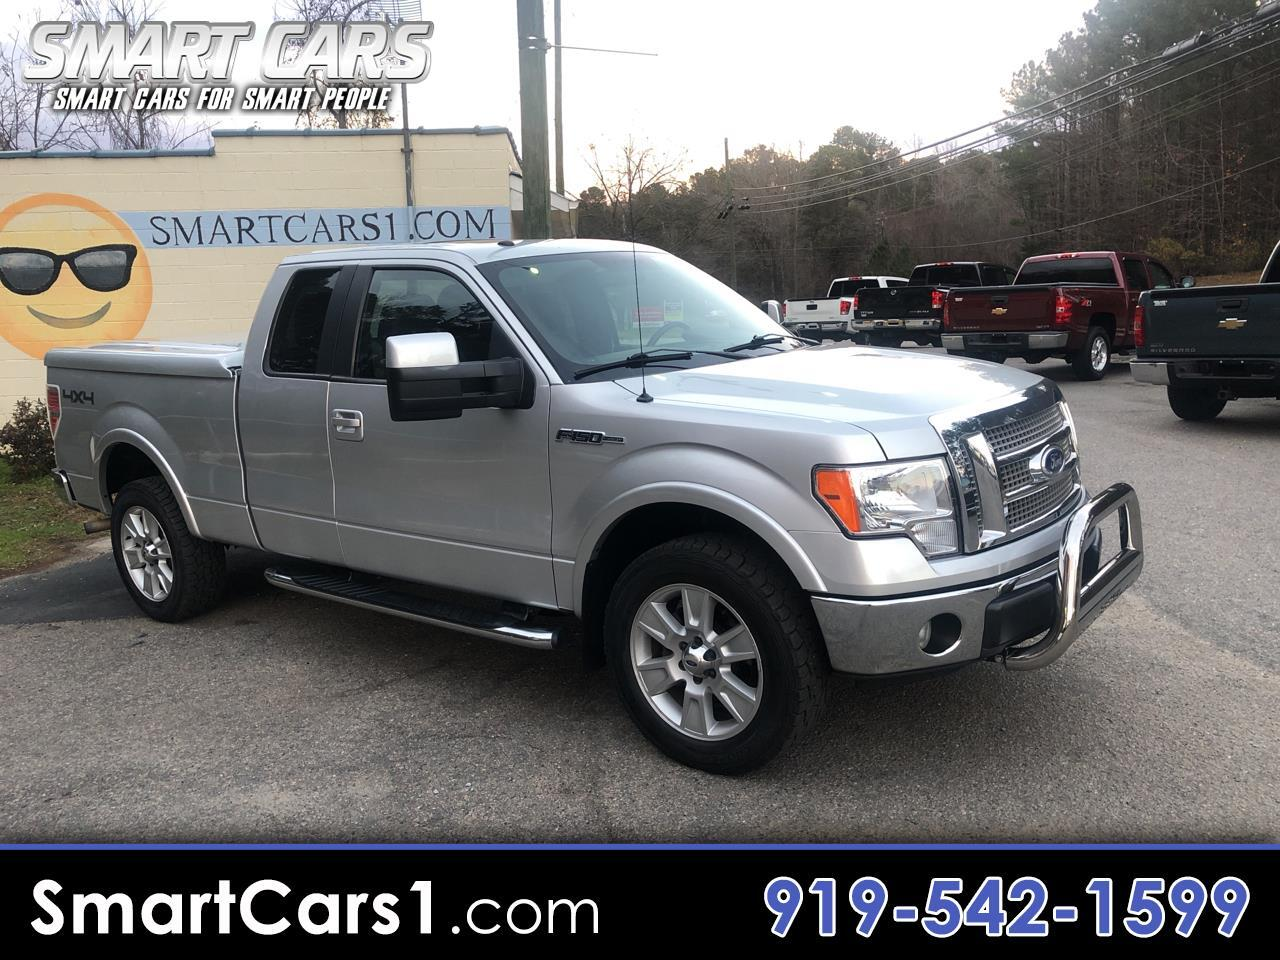 2010 Ford F-150 Lariat 4WD SuperCab 6.5' Box